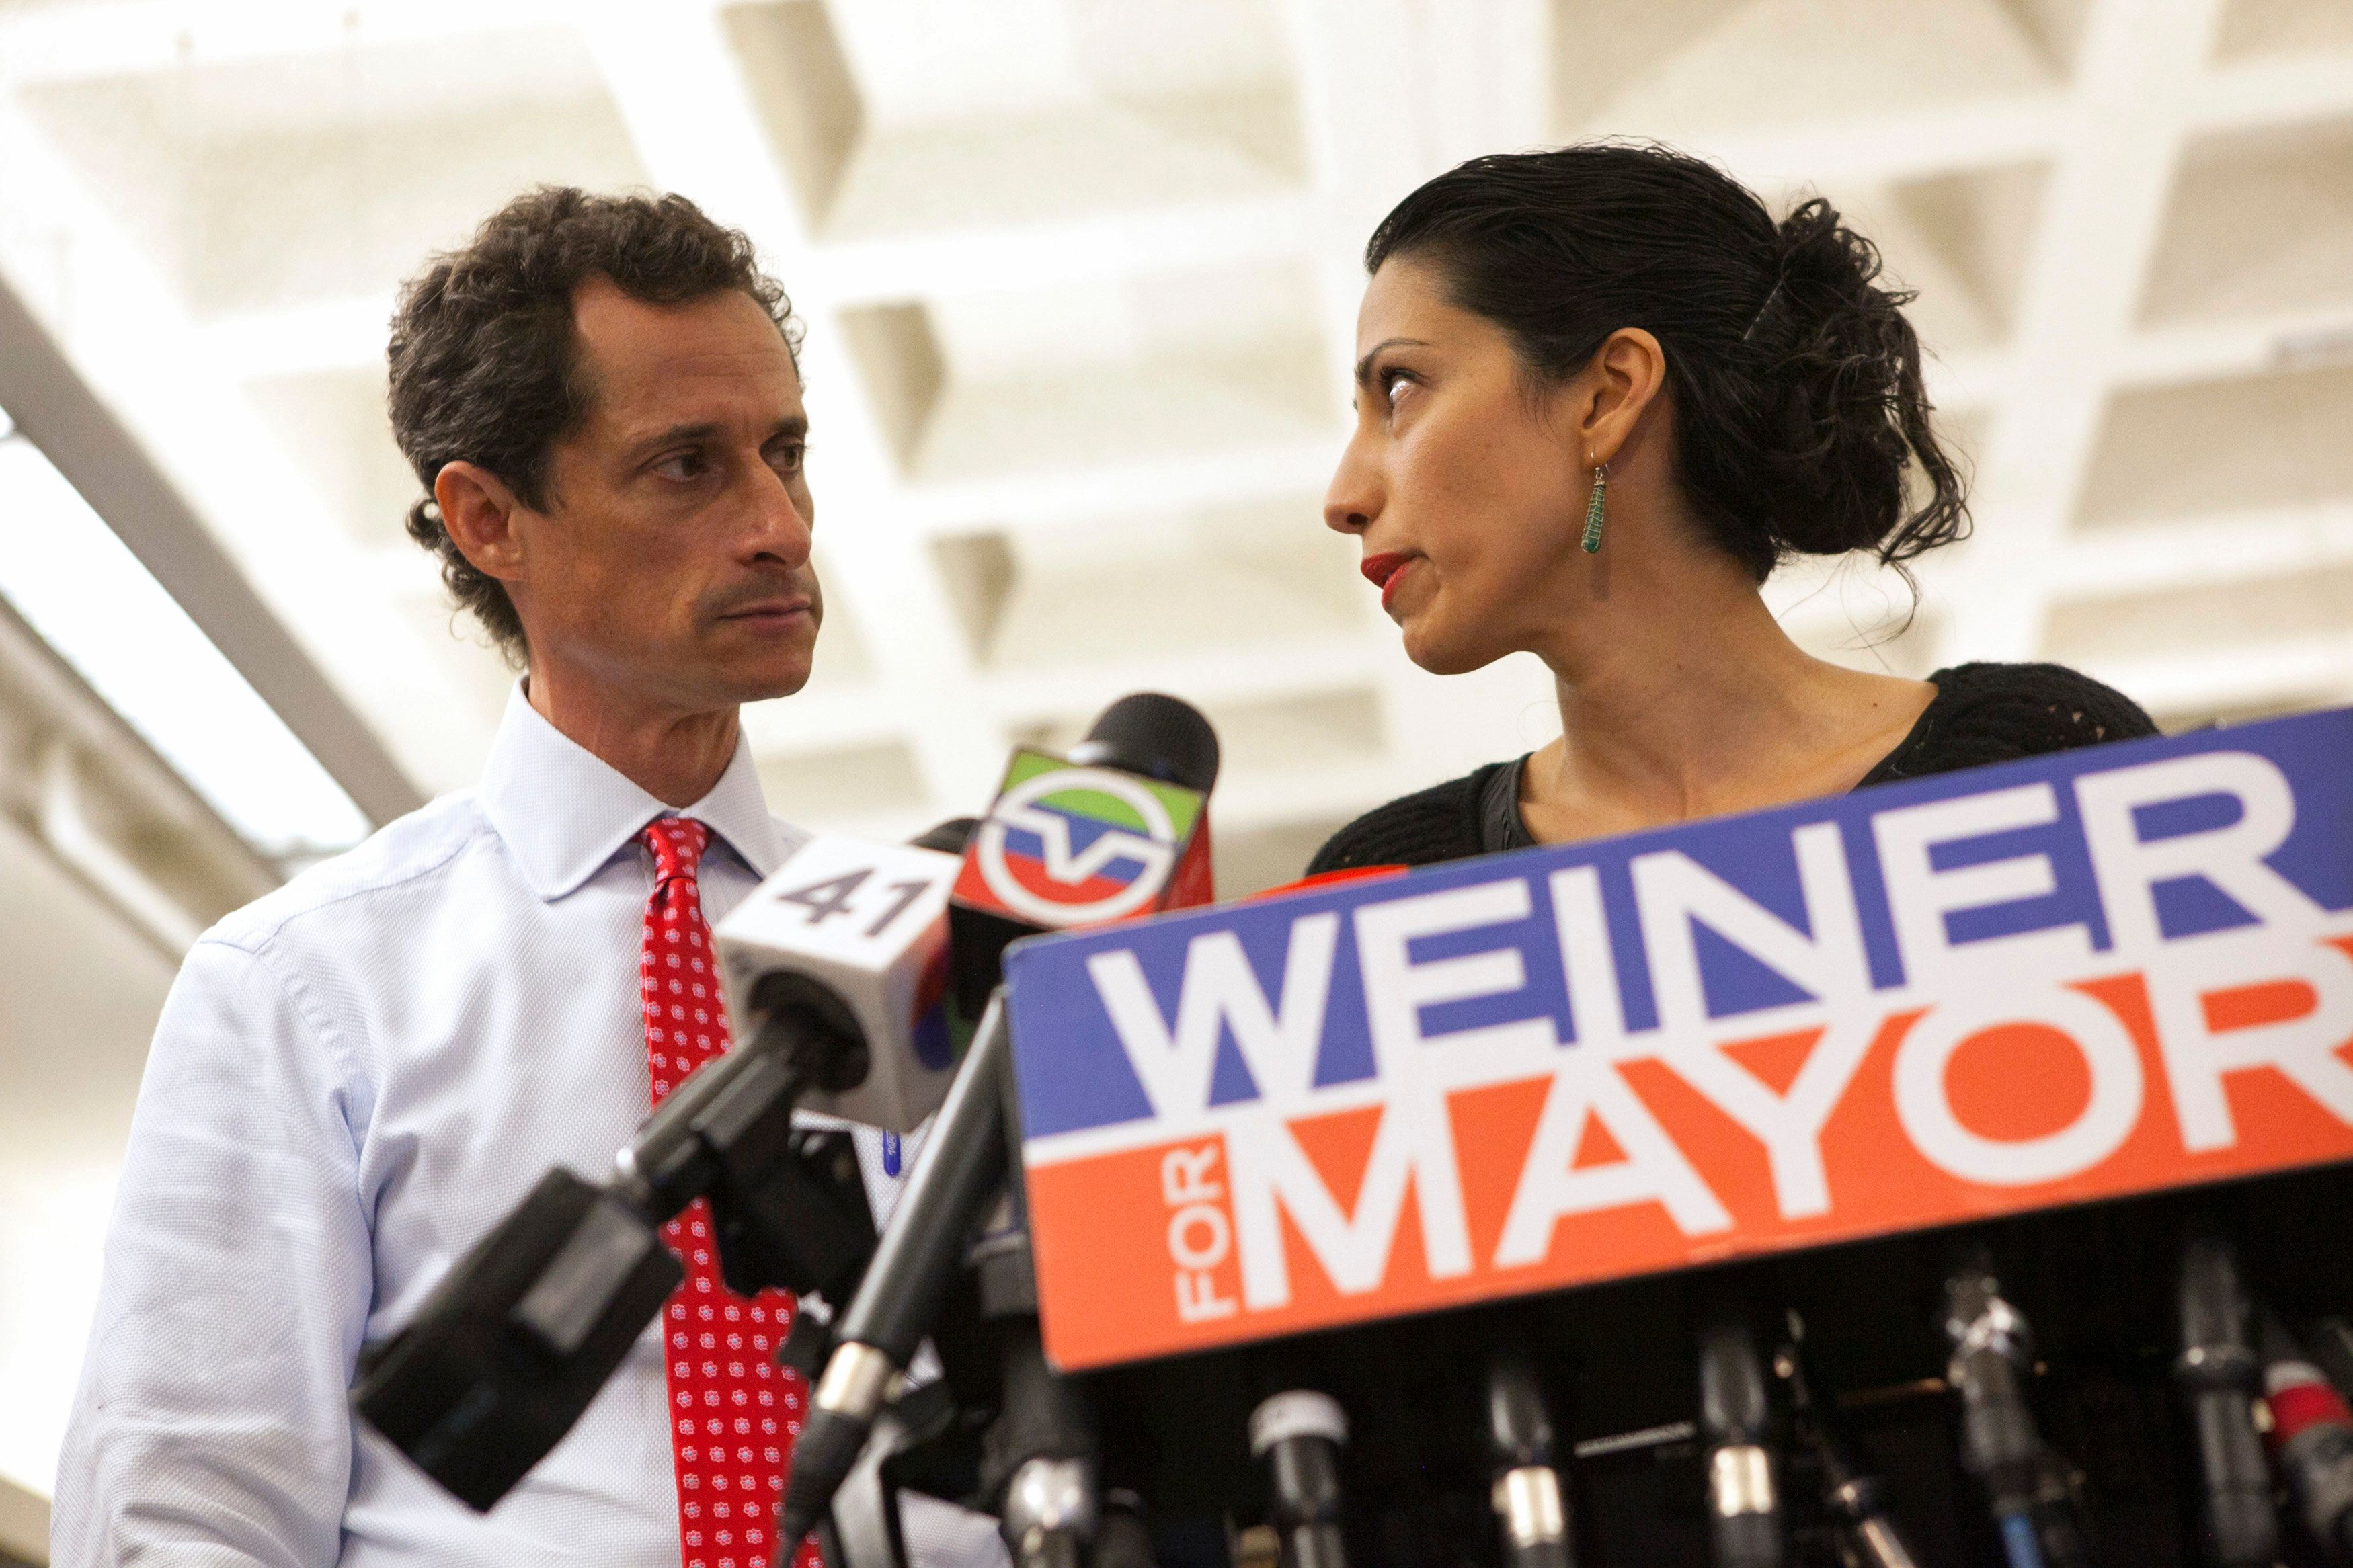 Anthony Weiner Blames Legal Woes on Untreated Addiction, Victim